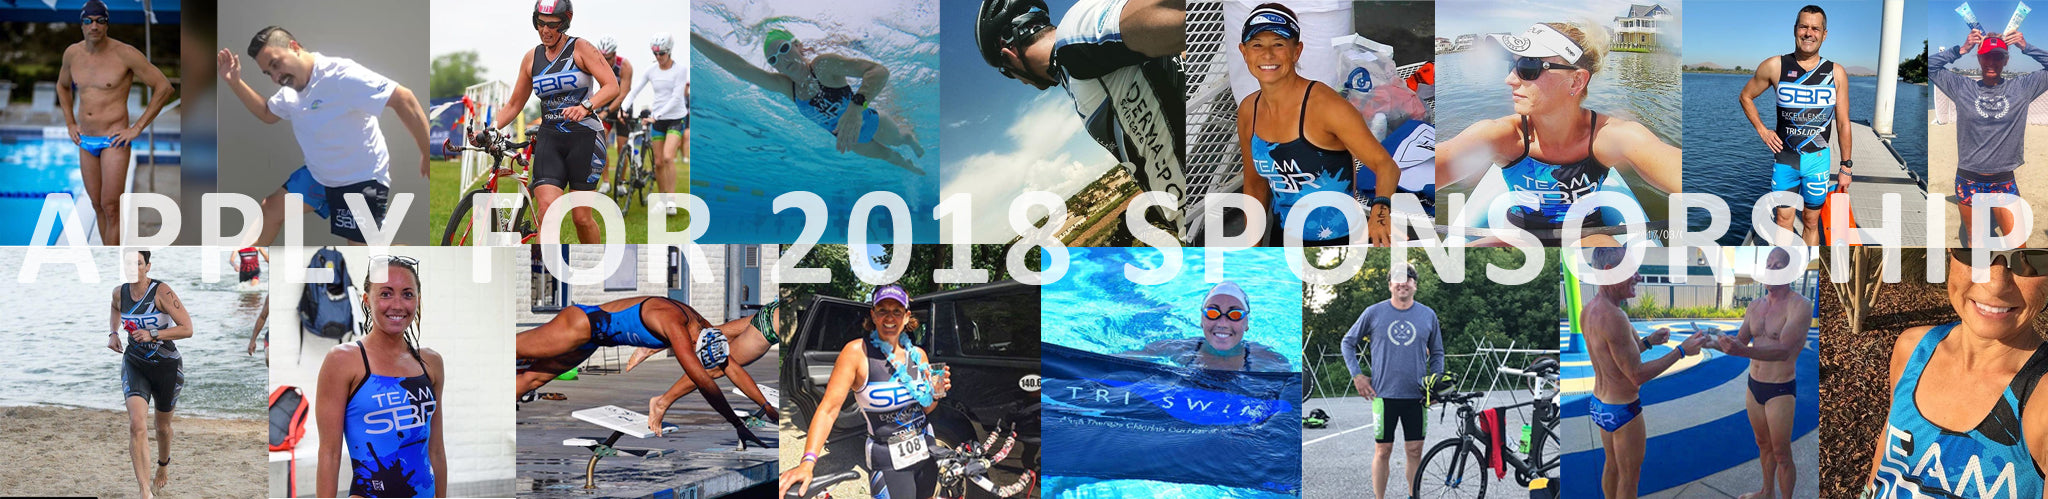 Apply for 2018 Athlete Sponsorship